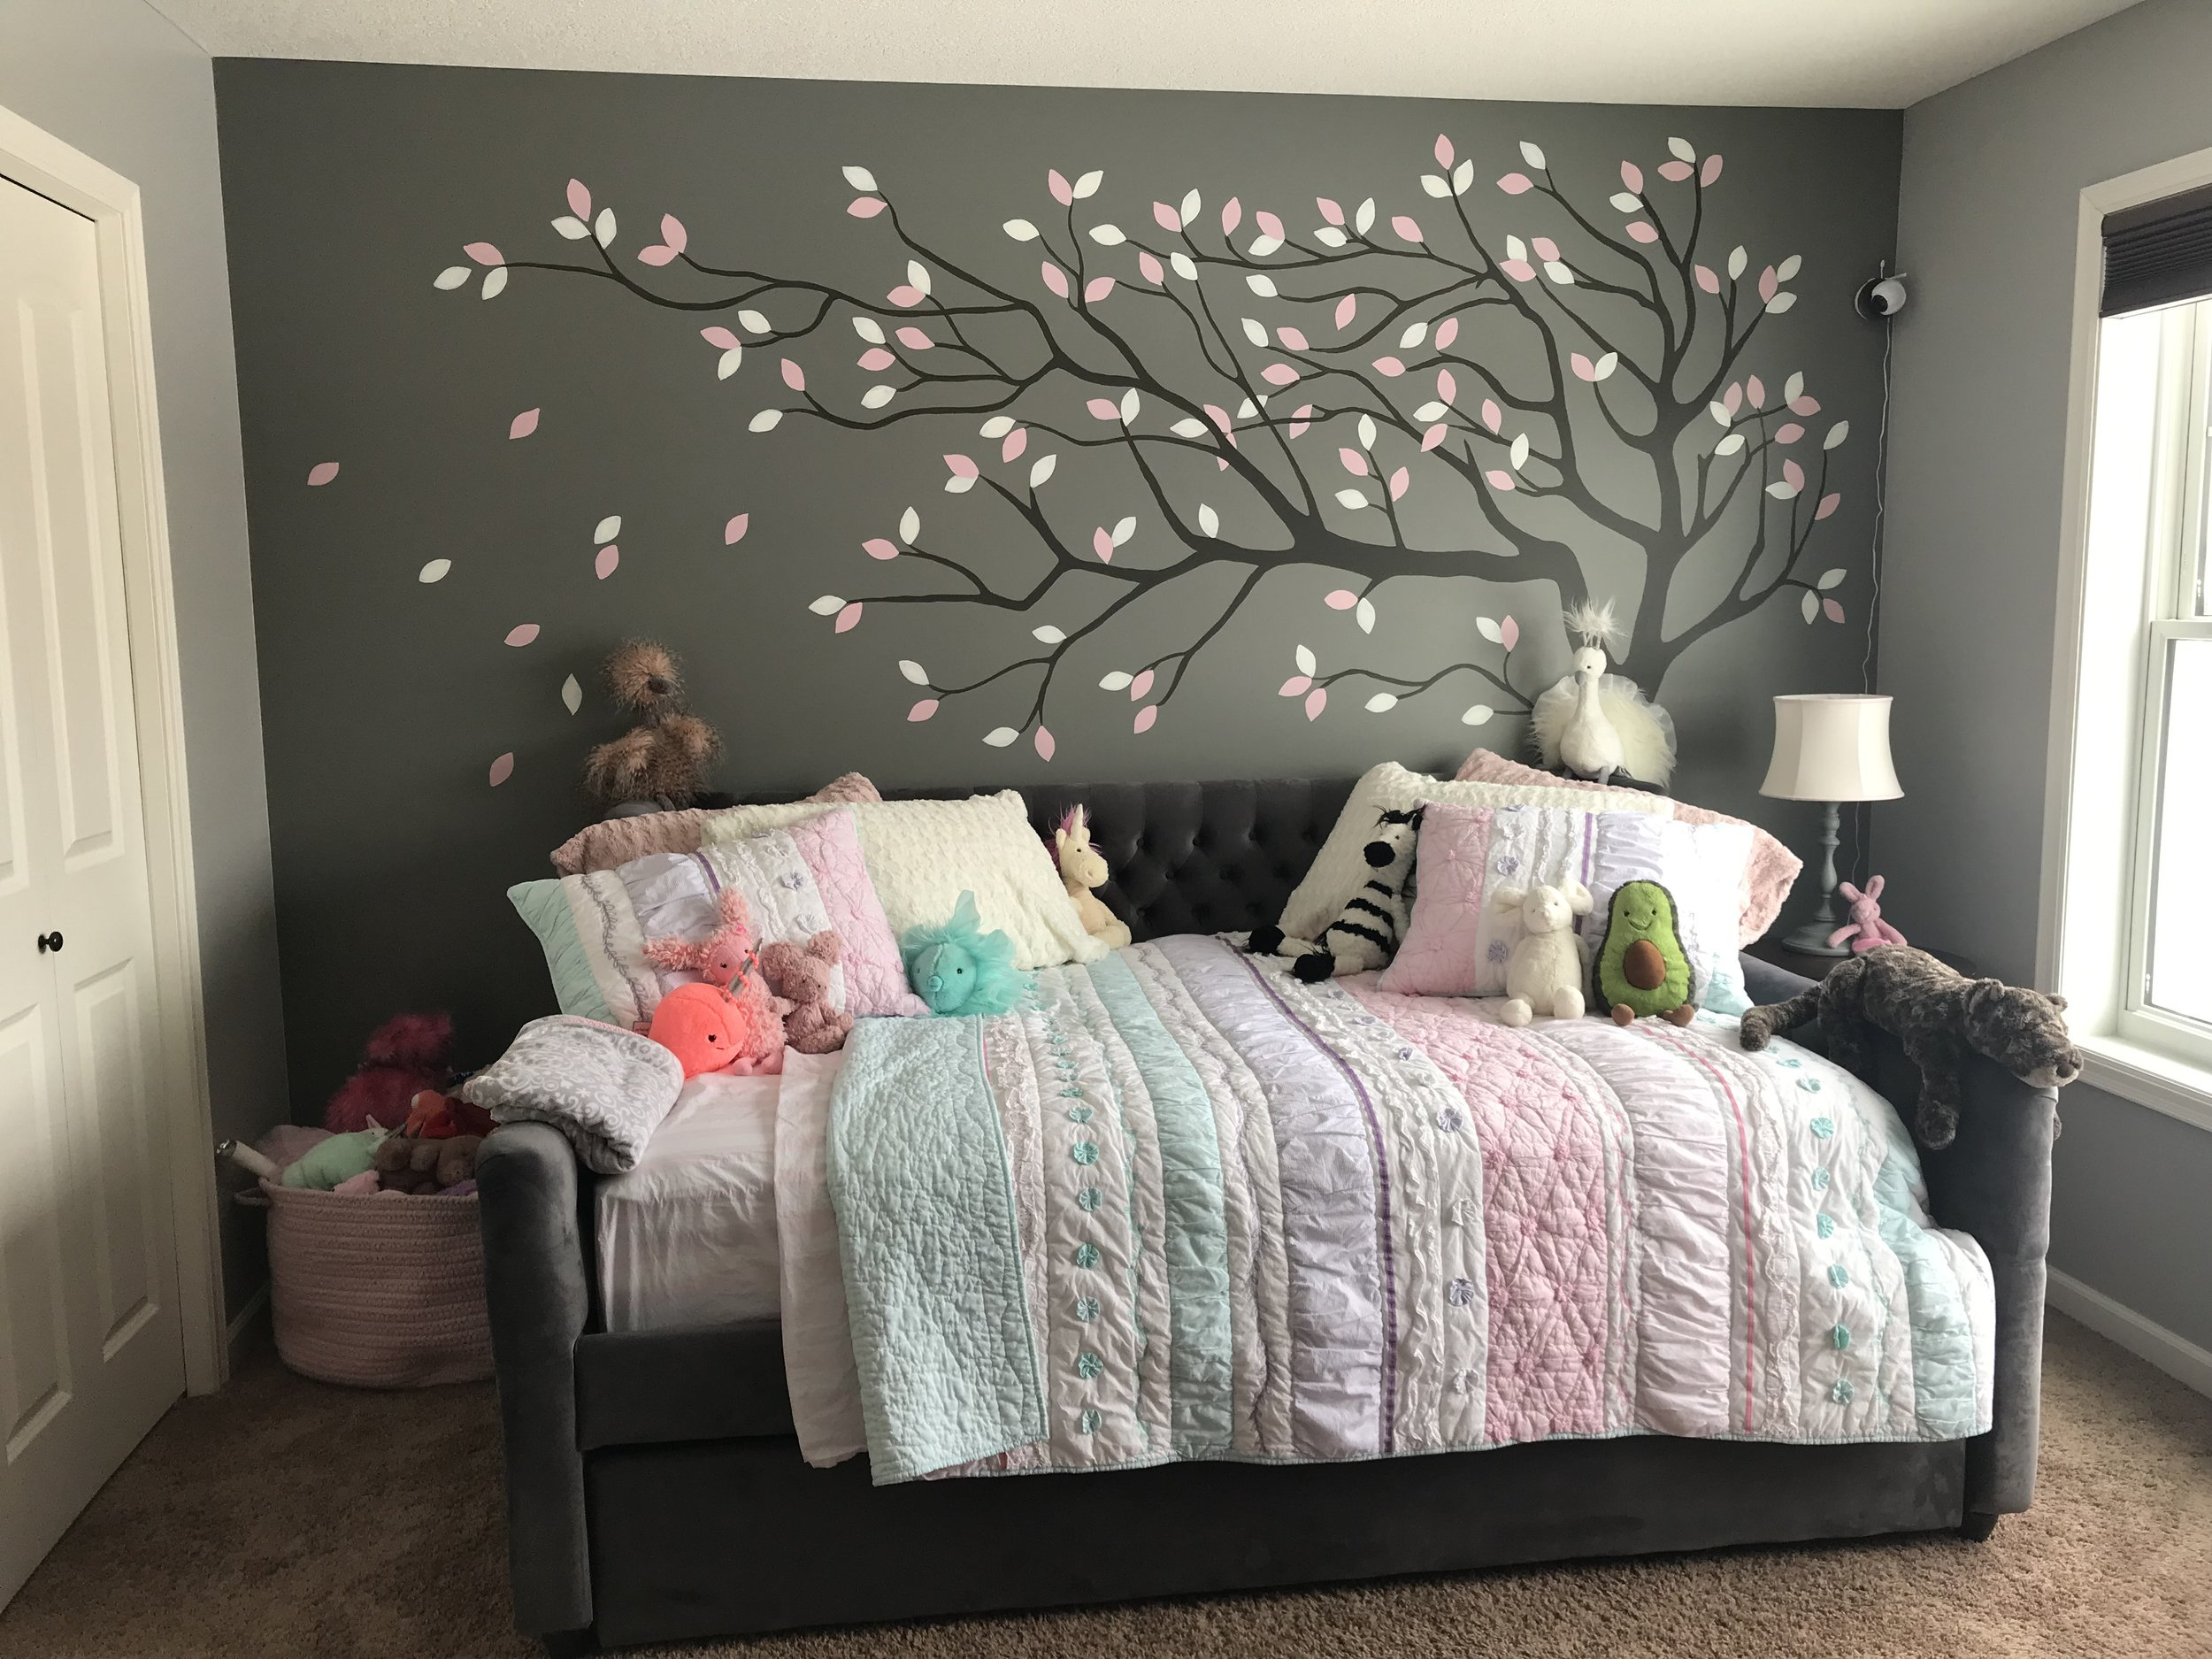 """2019 Transition to a """"Big - Girl Bed"""" Call Sheryl VanderPol (763-542-1116) for your custom design dreams!"""